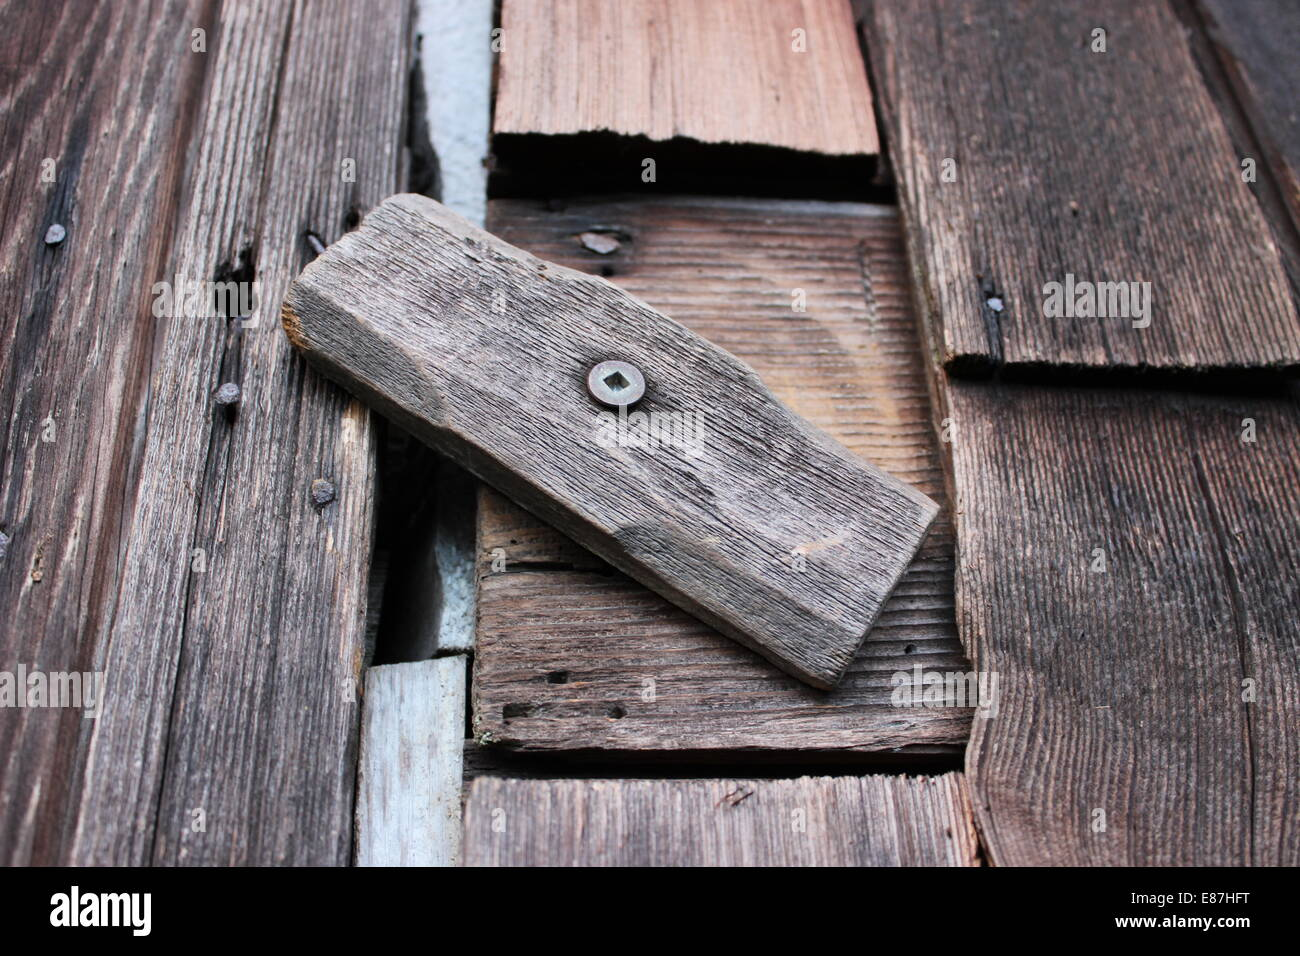 An old wooden barn latch - Stock Image